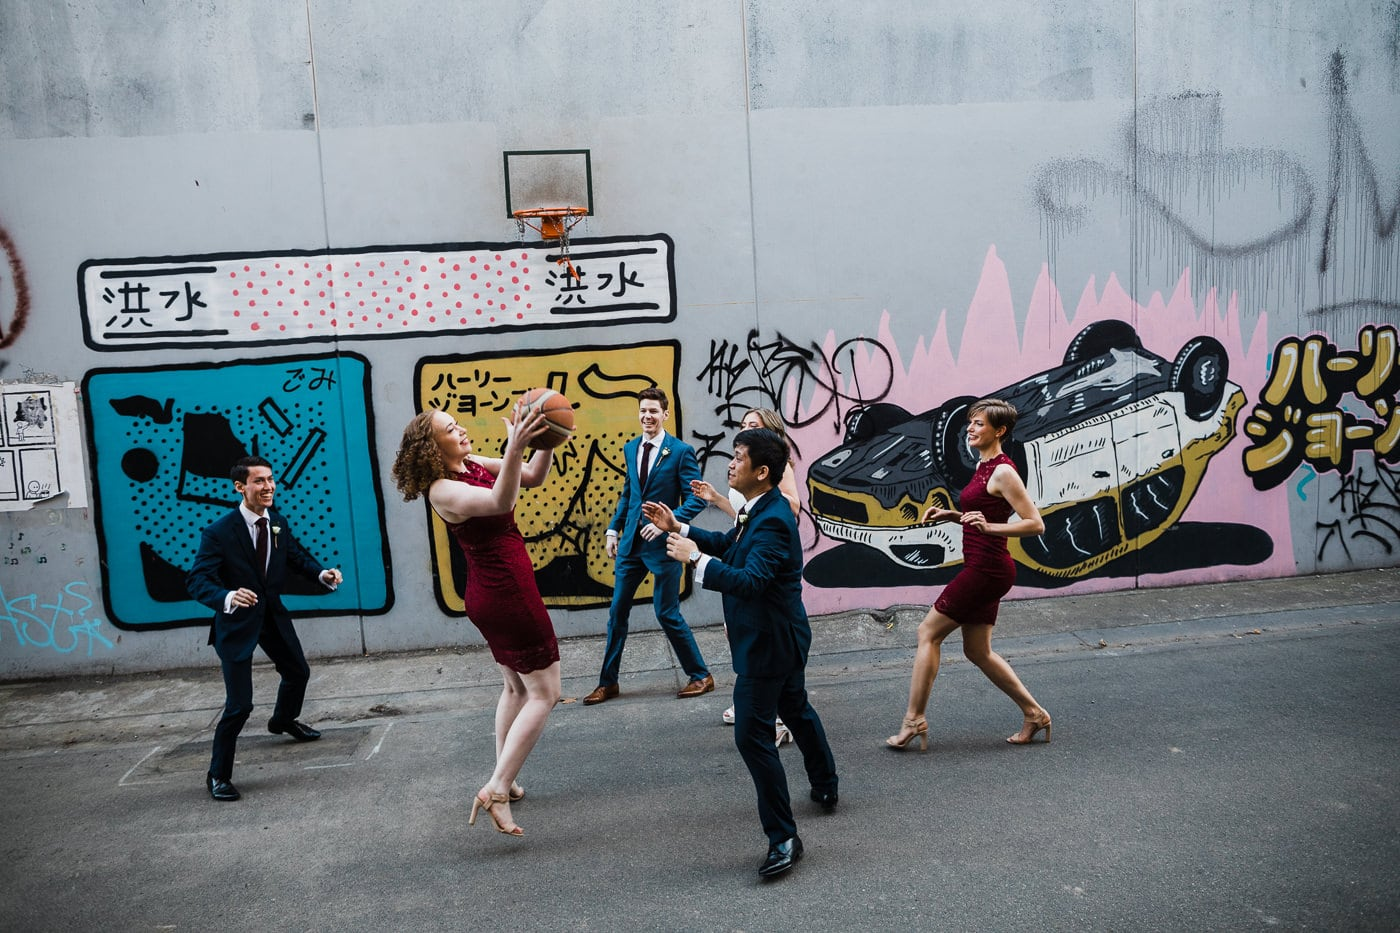 crazy wedding in melbourne - photoshoot with sports basketball - fun wedding